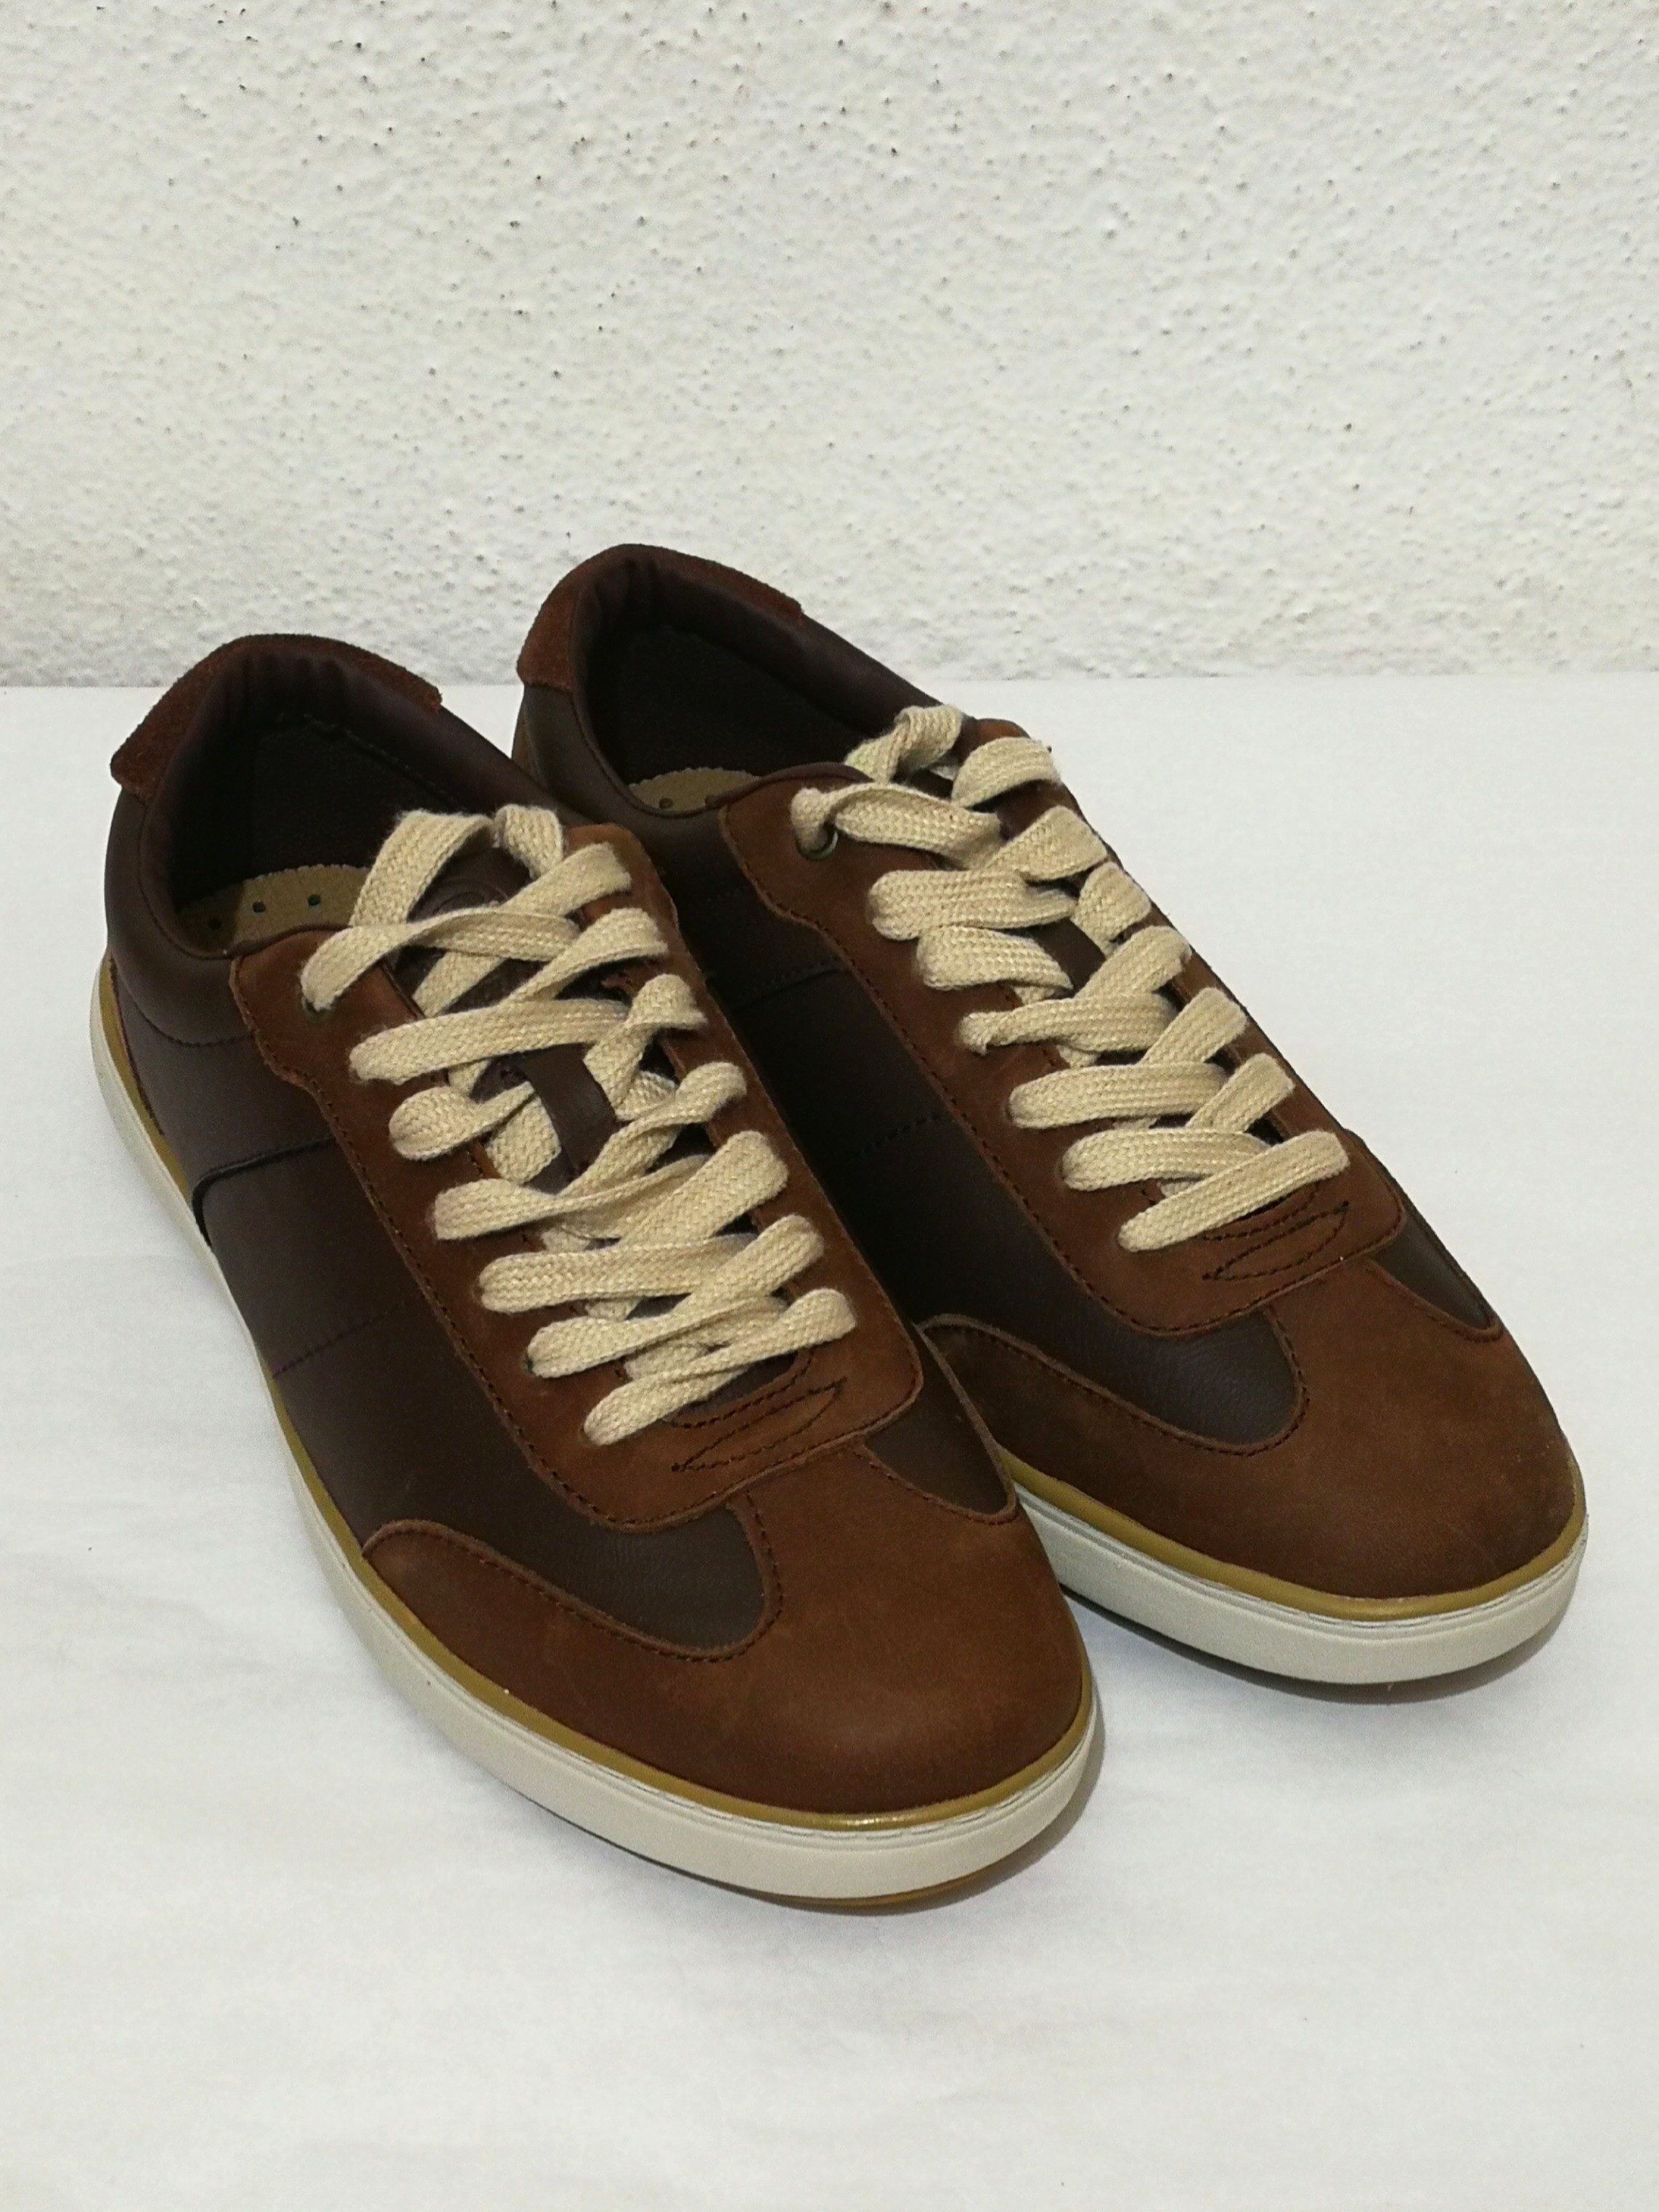 91903abe53520f In Stock Men Casual Brown Leather Shoes